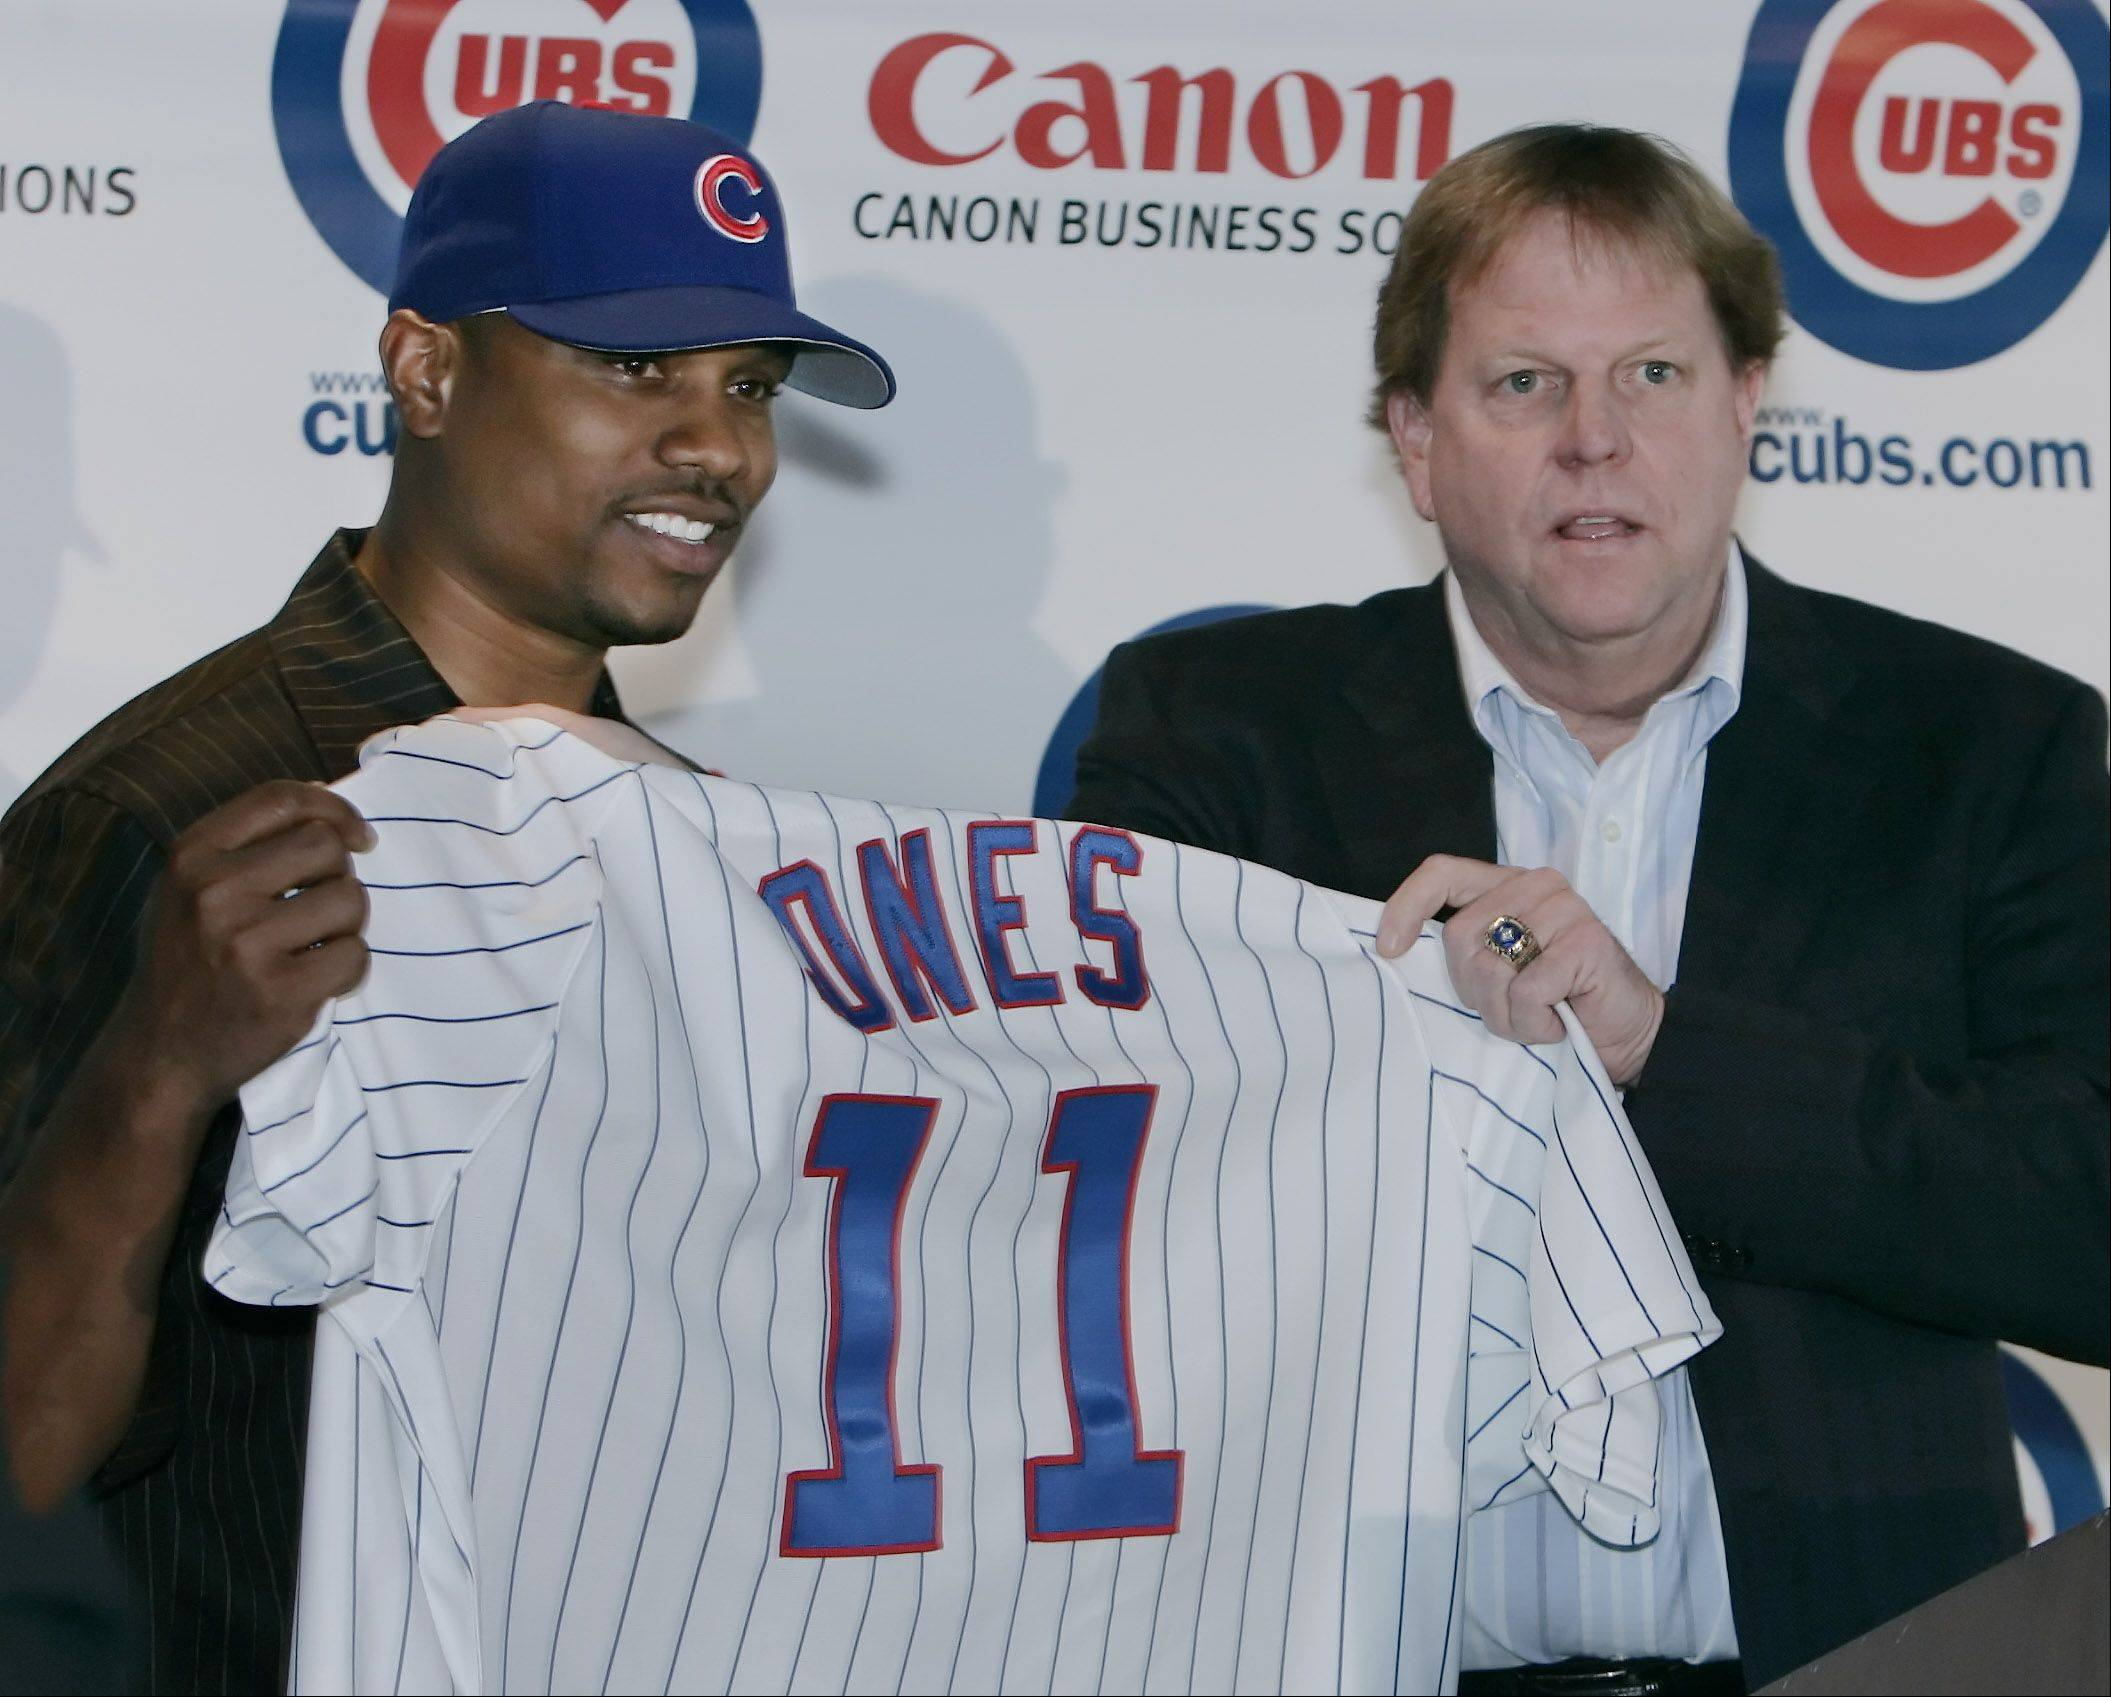 Chicago Cubs General Manager Jim Hendry introduced Jacque Jones as one of their new outfielders during a news conference at the Wrigley Field Stadium Club Restaurant in Chicago.